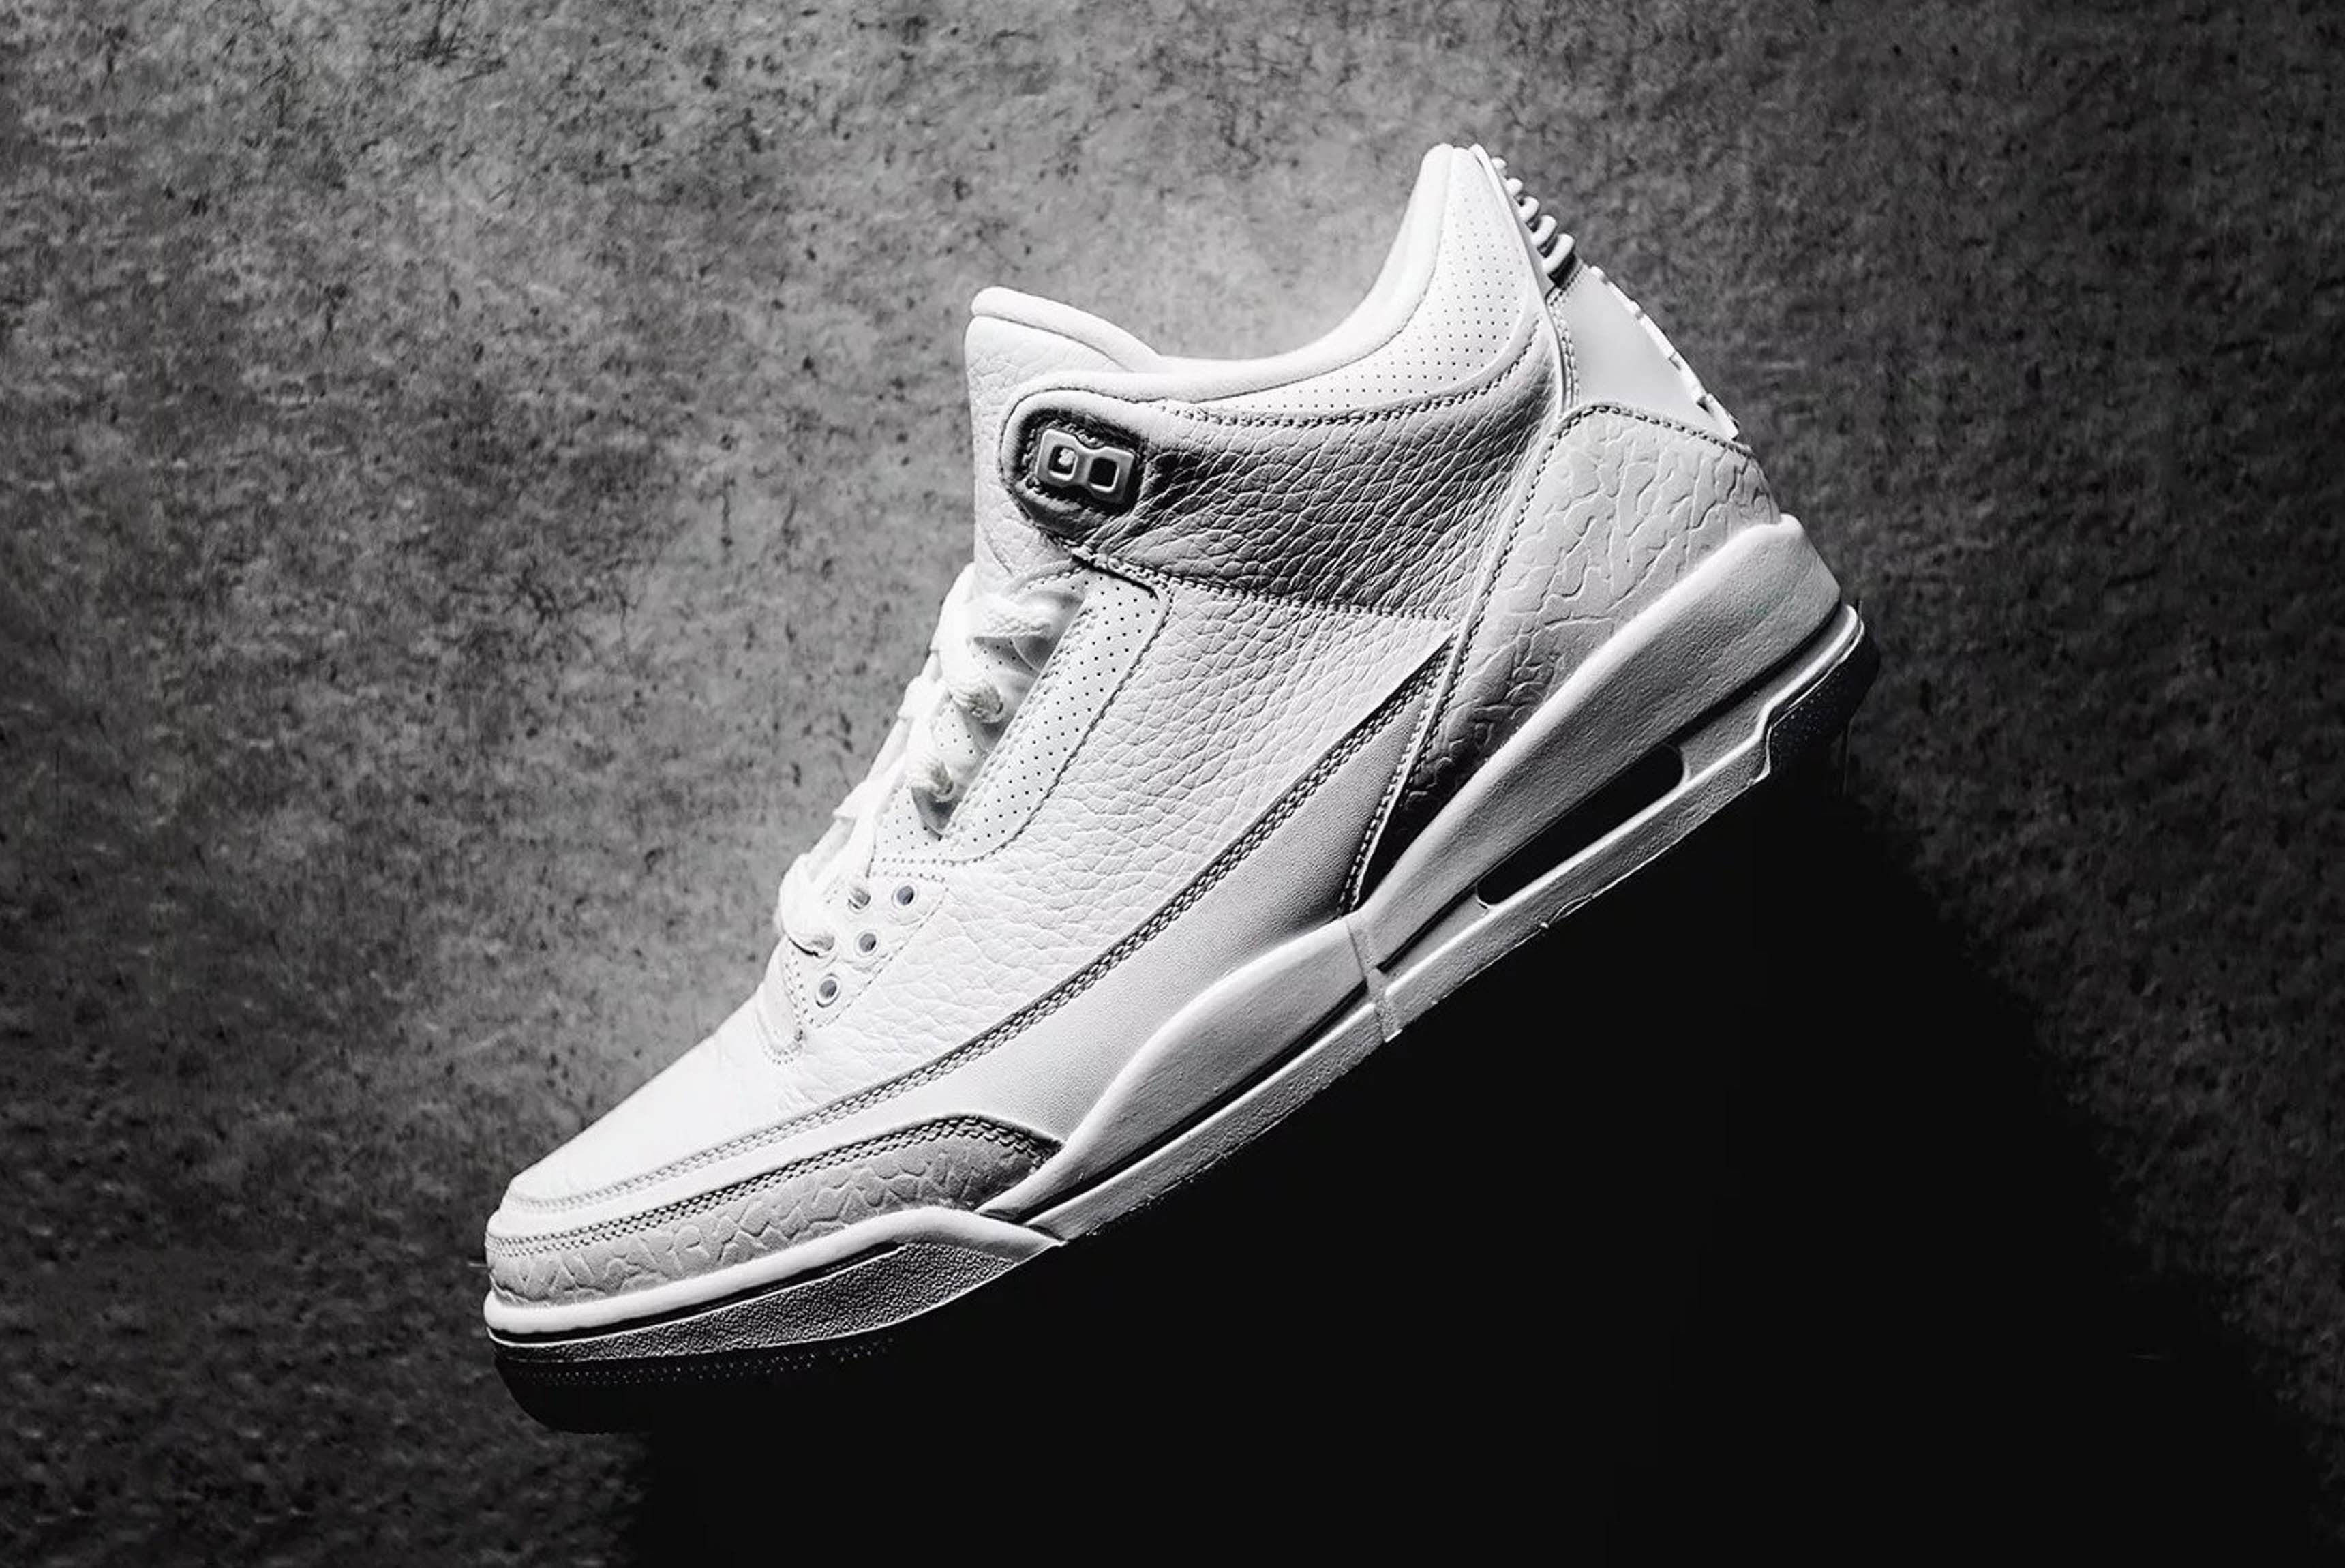 Air Jordan 3 Pure White Closer Look 01 Sneaker Freaker